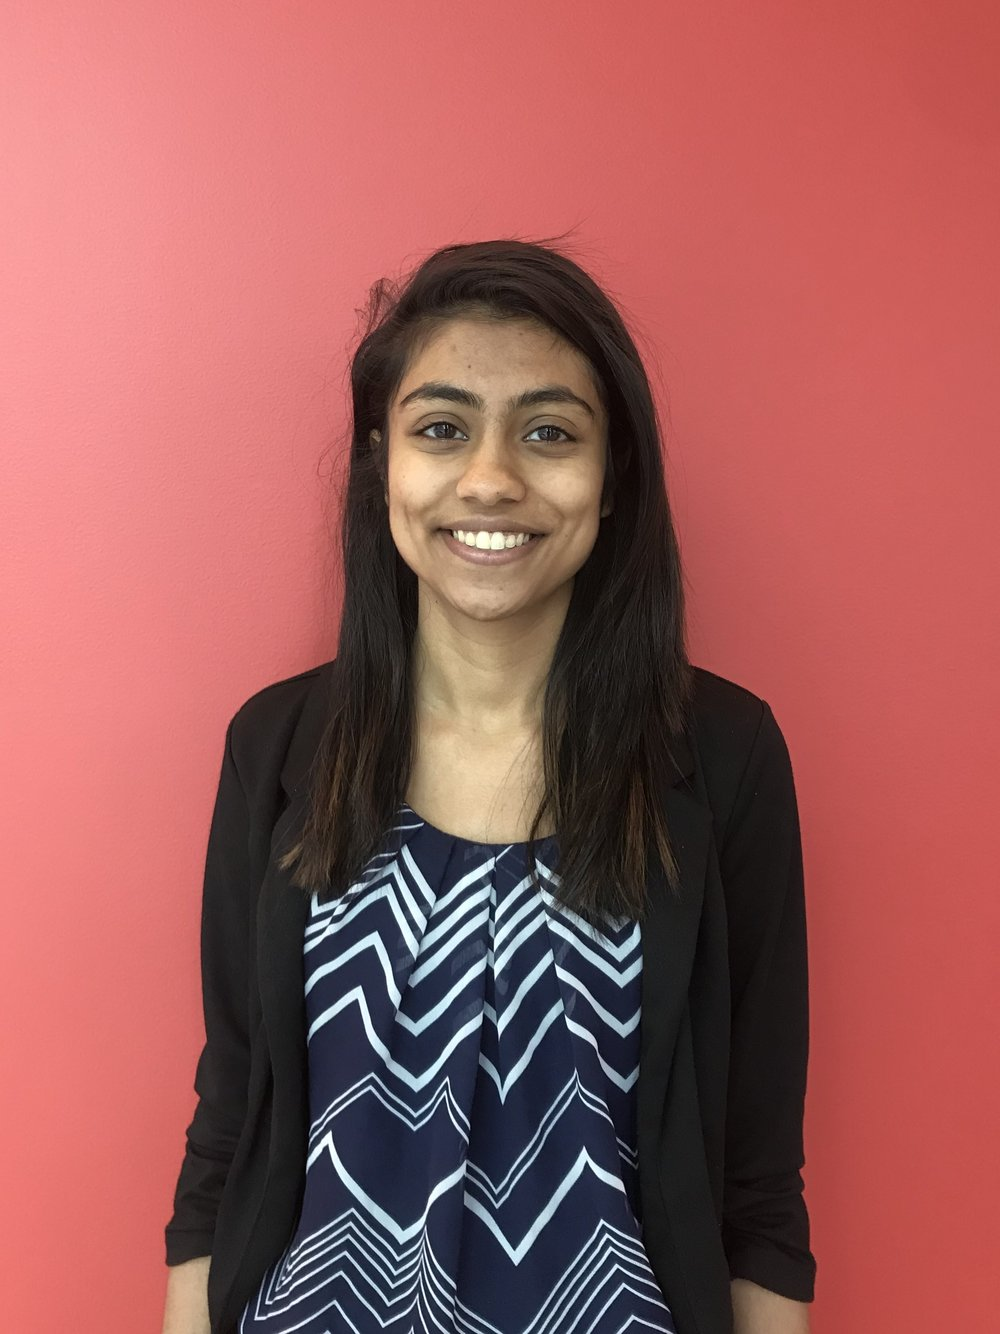 Saloni is a junior concentrating in Business Technology at Carnegie Mellon University. She is active on campus both as the finance chair for Mayur SASA as well as a teaching assistant for C@CM. She is very interested in consulting and enjoys using data to solve problems.